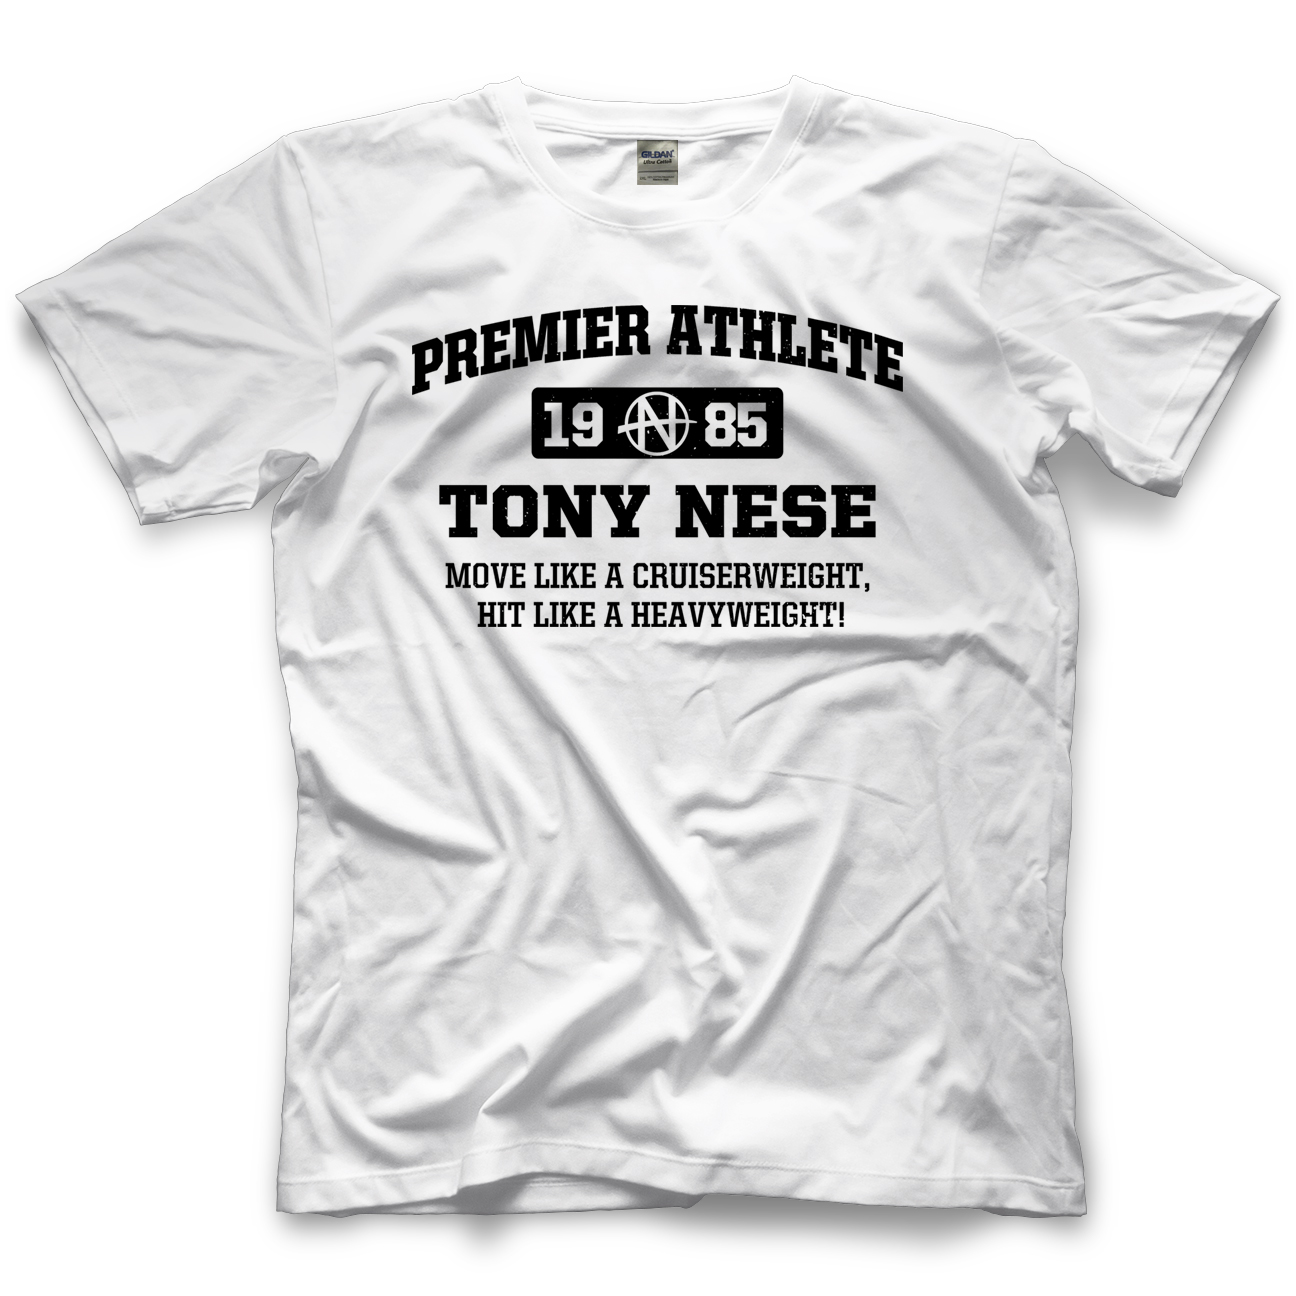 Anthony Nese 1985 T-shirt